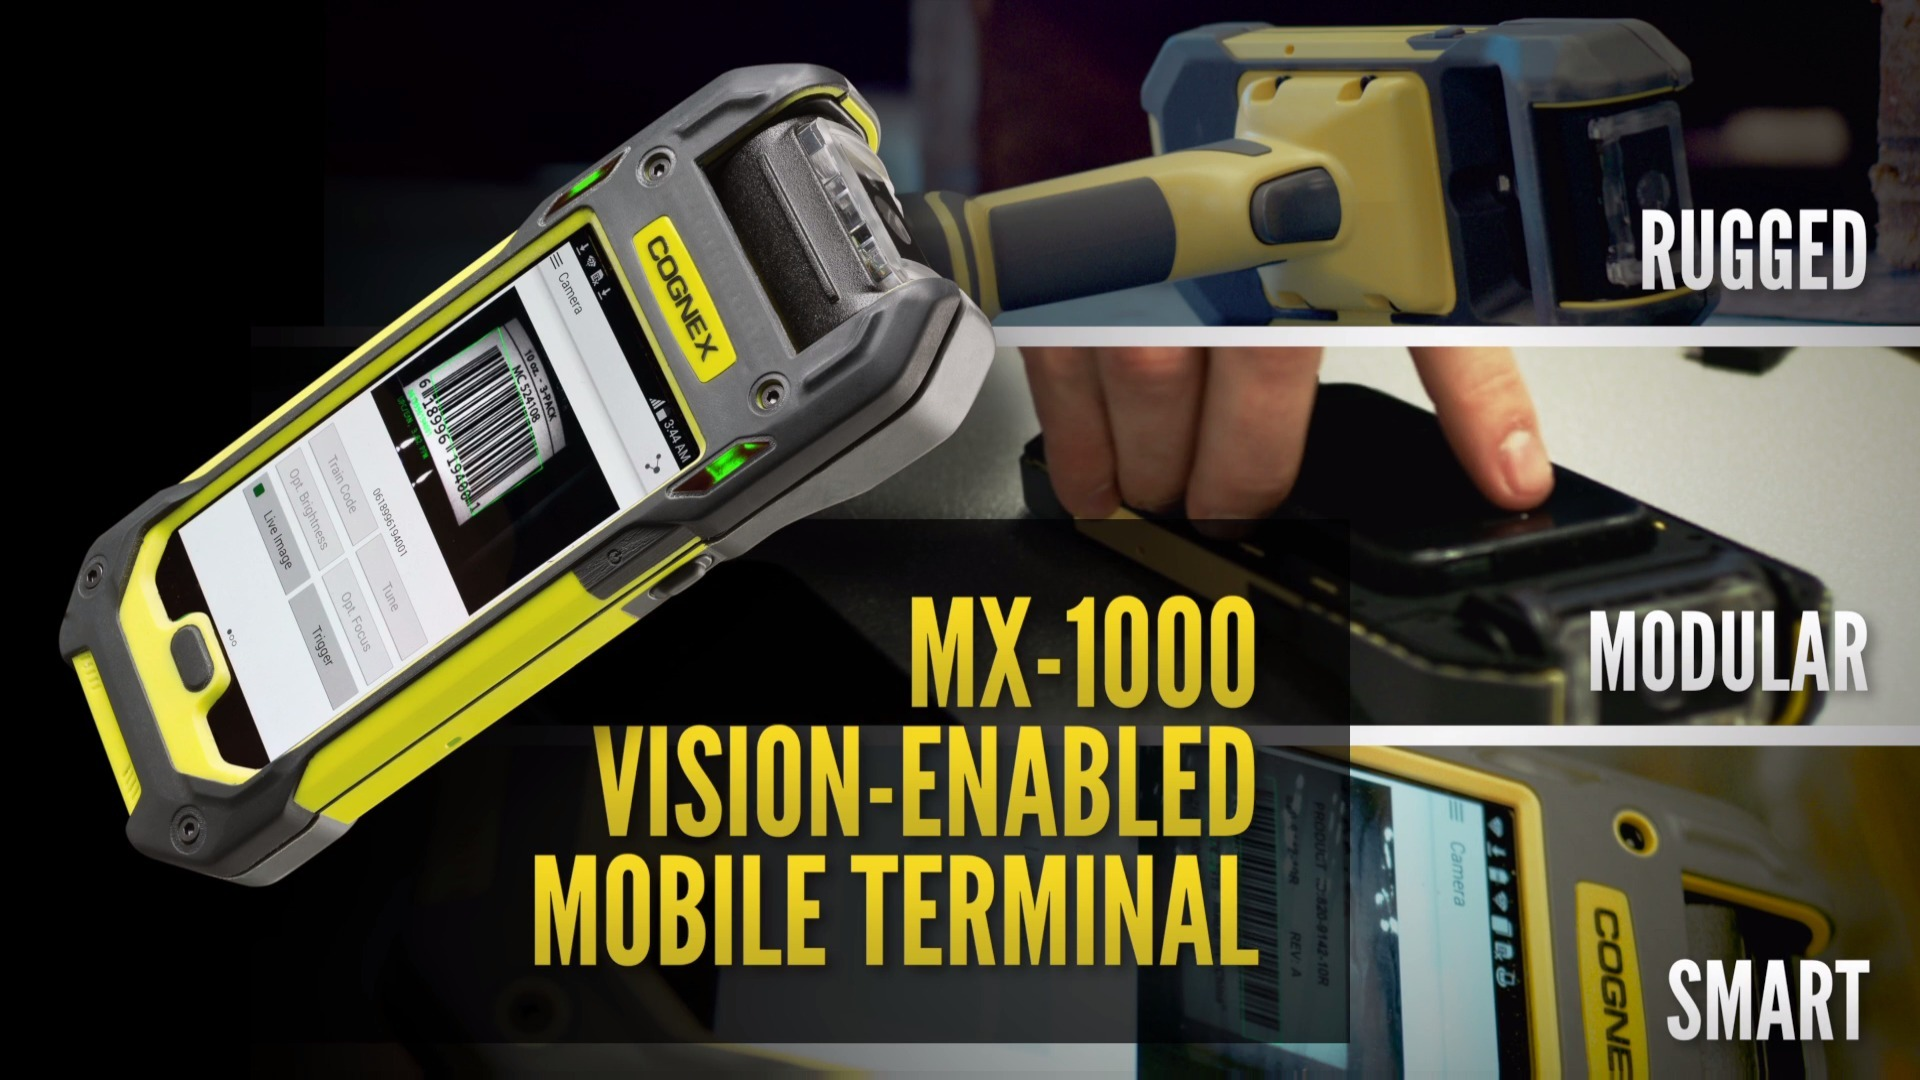 MX-1000 Vision-enabled Mobile Terminal Demo